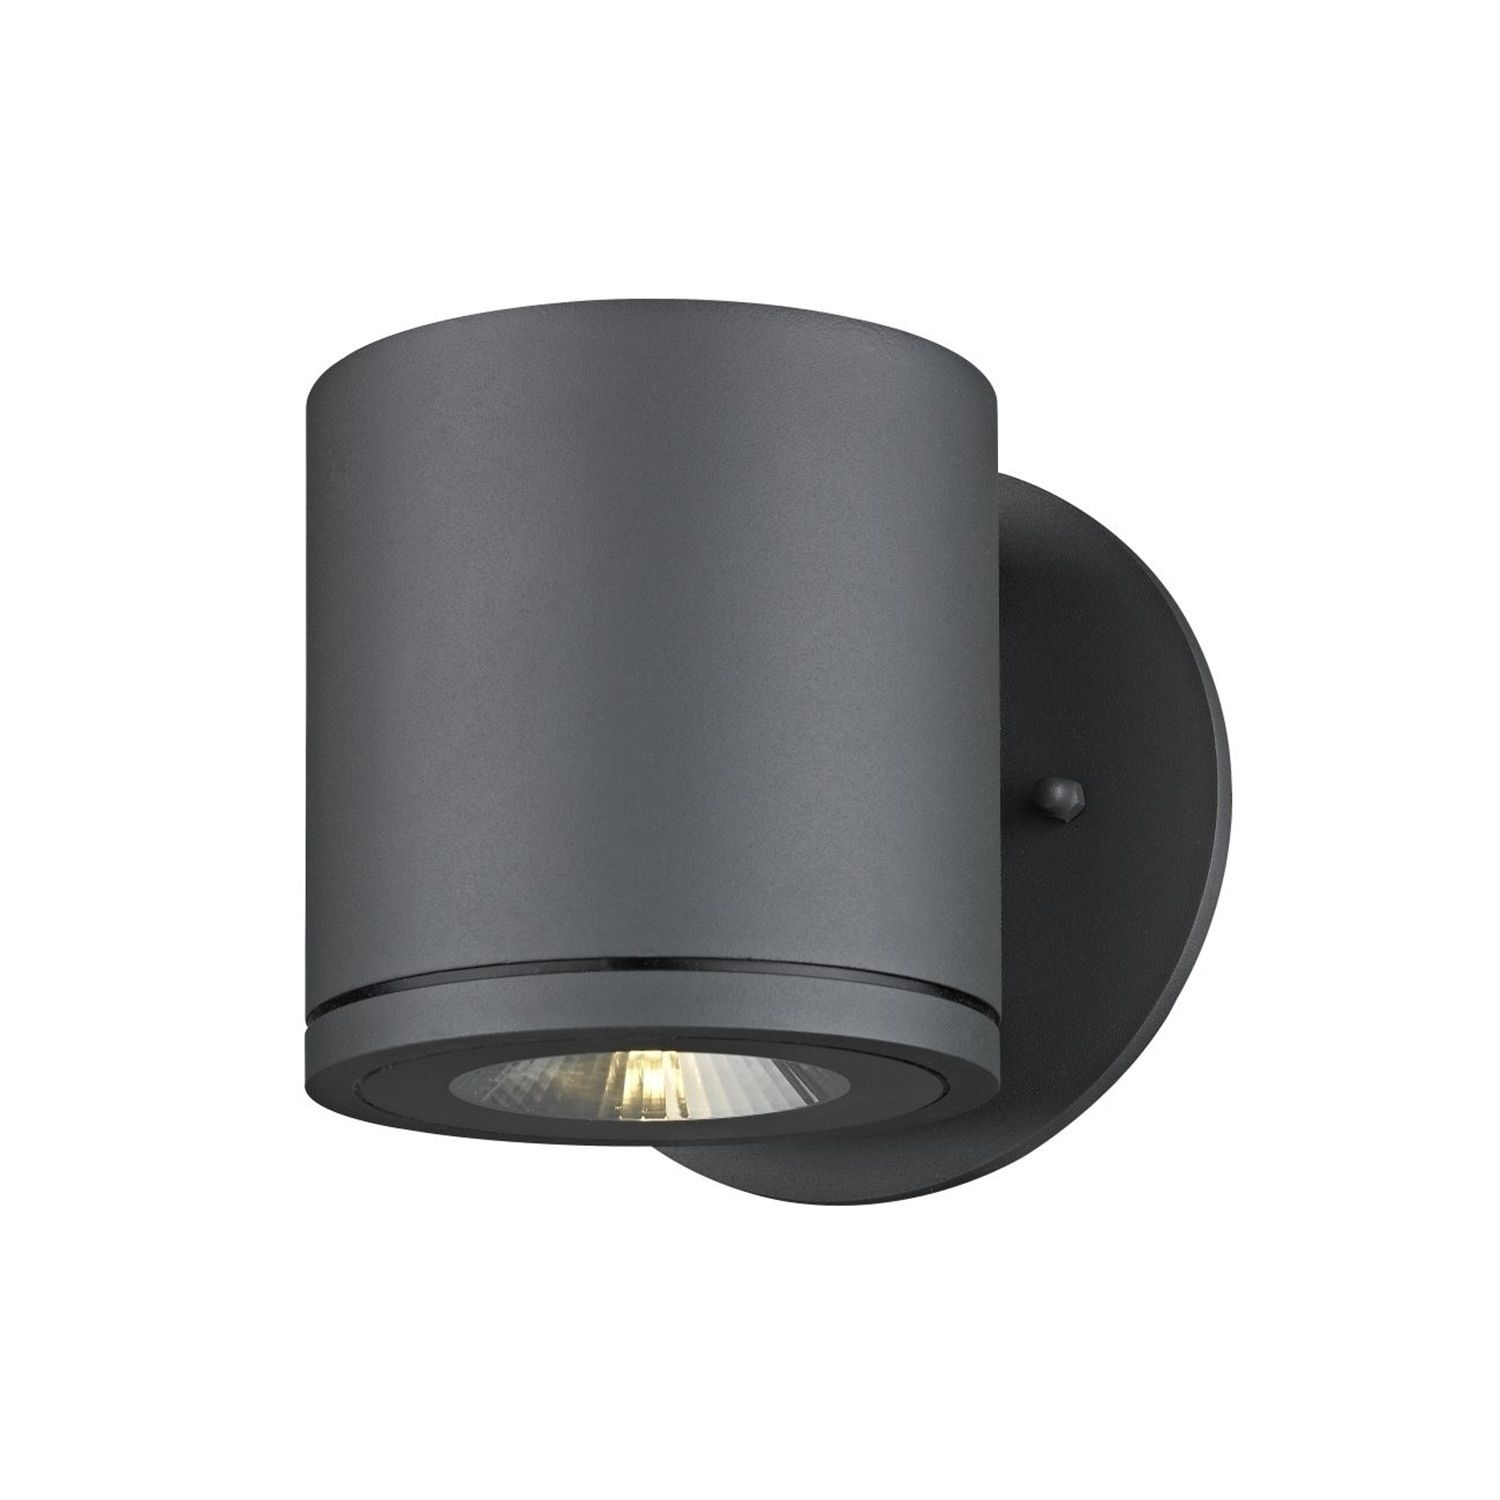 Slv lighting big rox led anthracite wall lamp anthracite